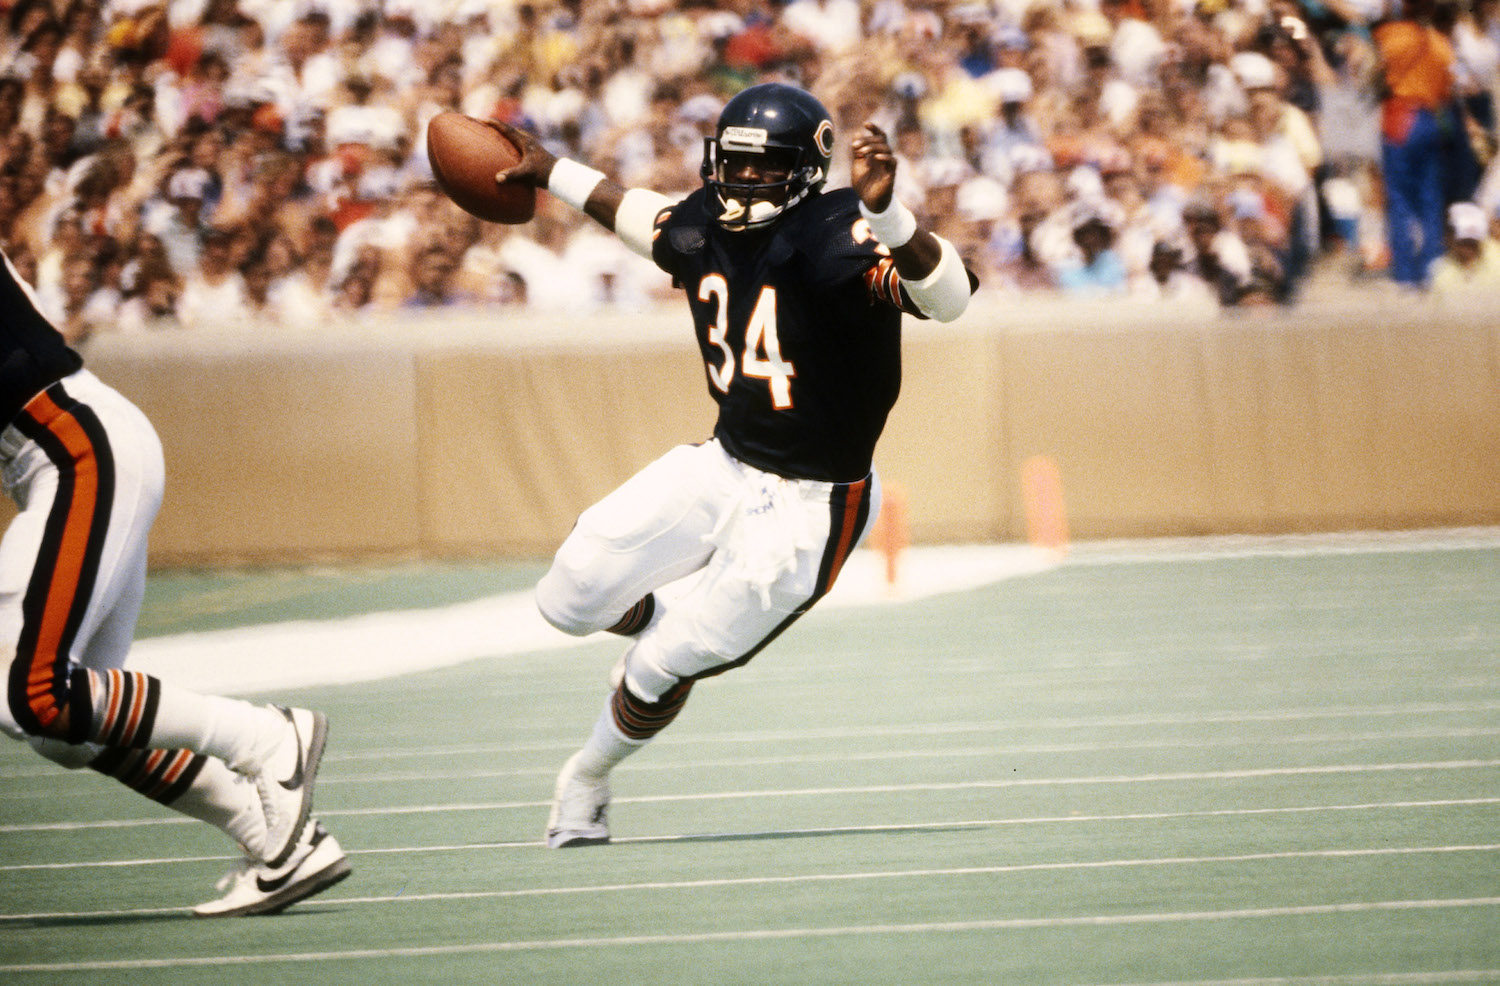 Walter Payton has fourth-most rushing yards on Thanksgiving Day.